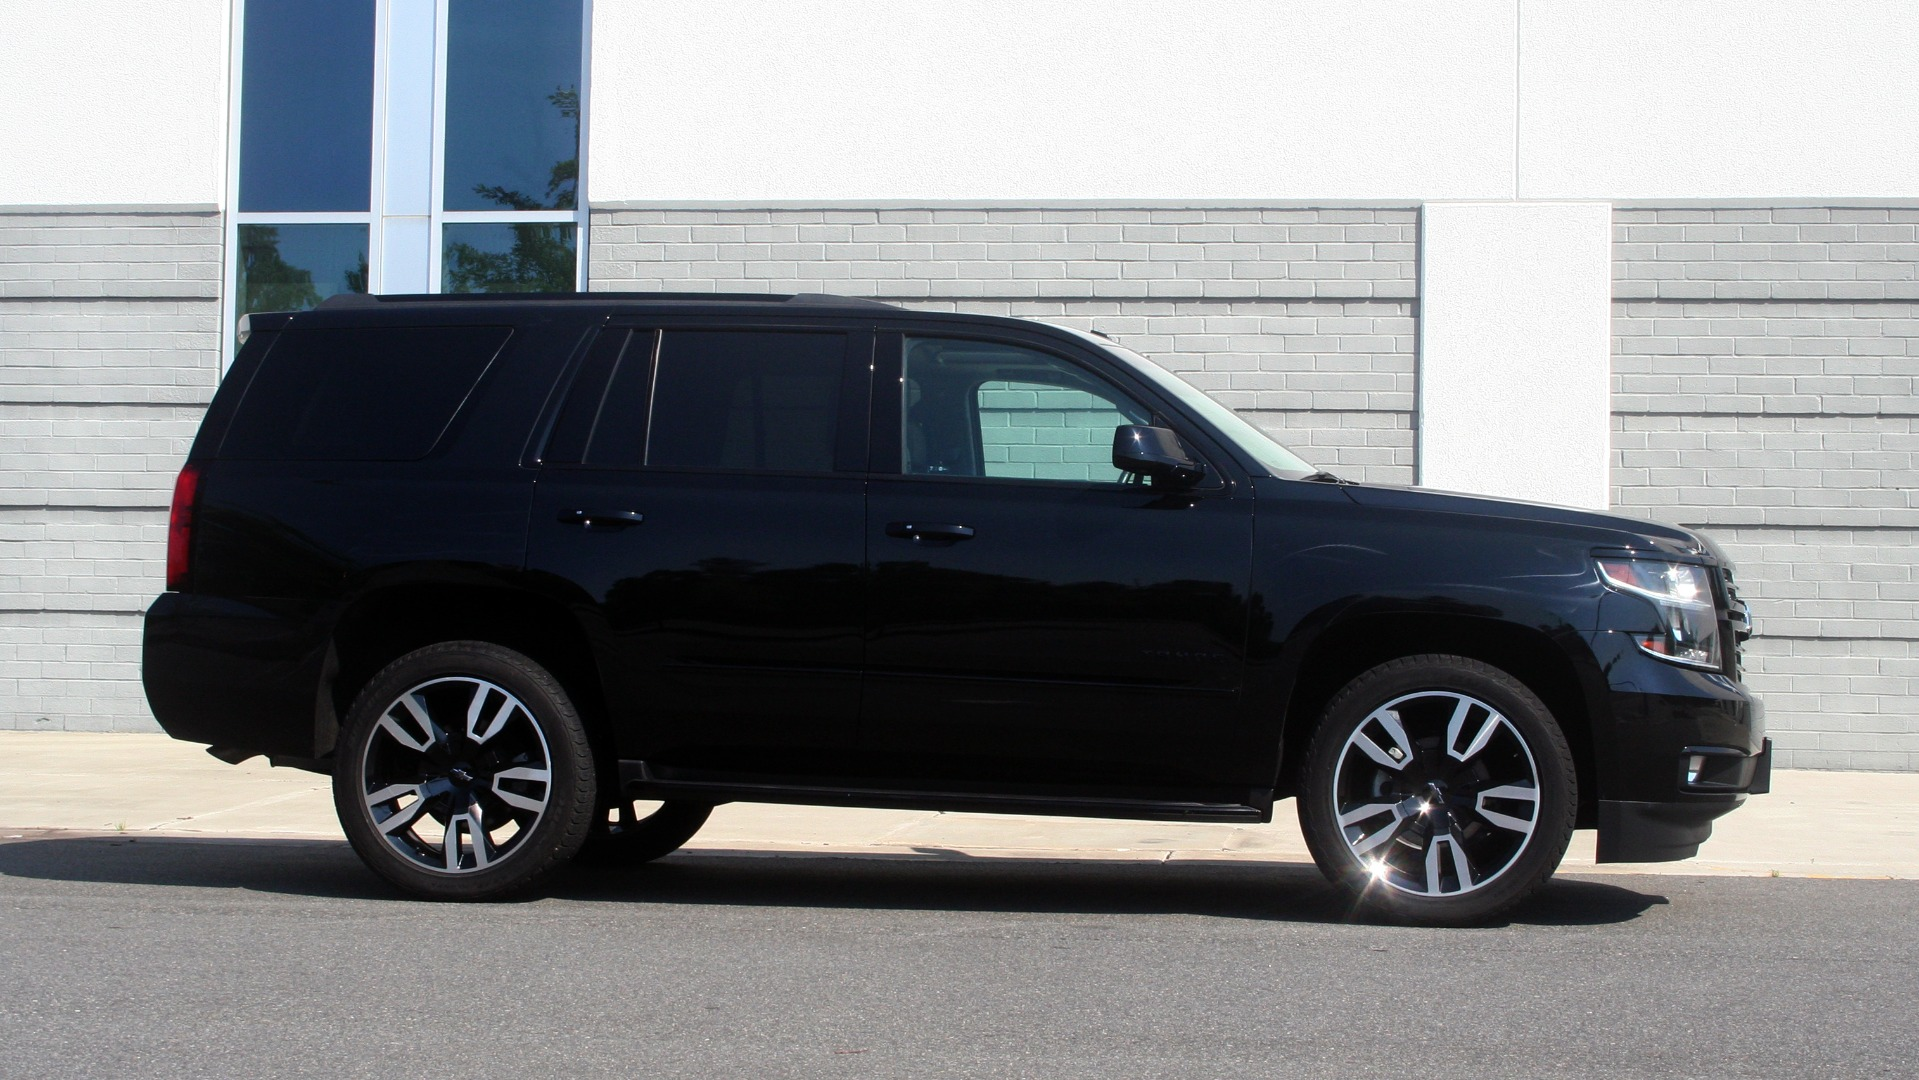 Used 2018 Chevrolet TAHOE PREMIER RST / 4X4 / NAV / BOSE / SUNROOF / 3-ROW / REARVIEW for sale $65,995 at Formula Imports in Charlotte NC 28227 9